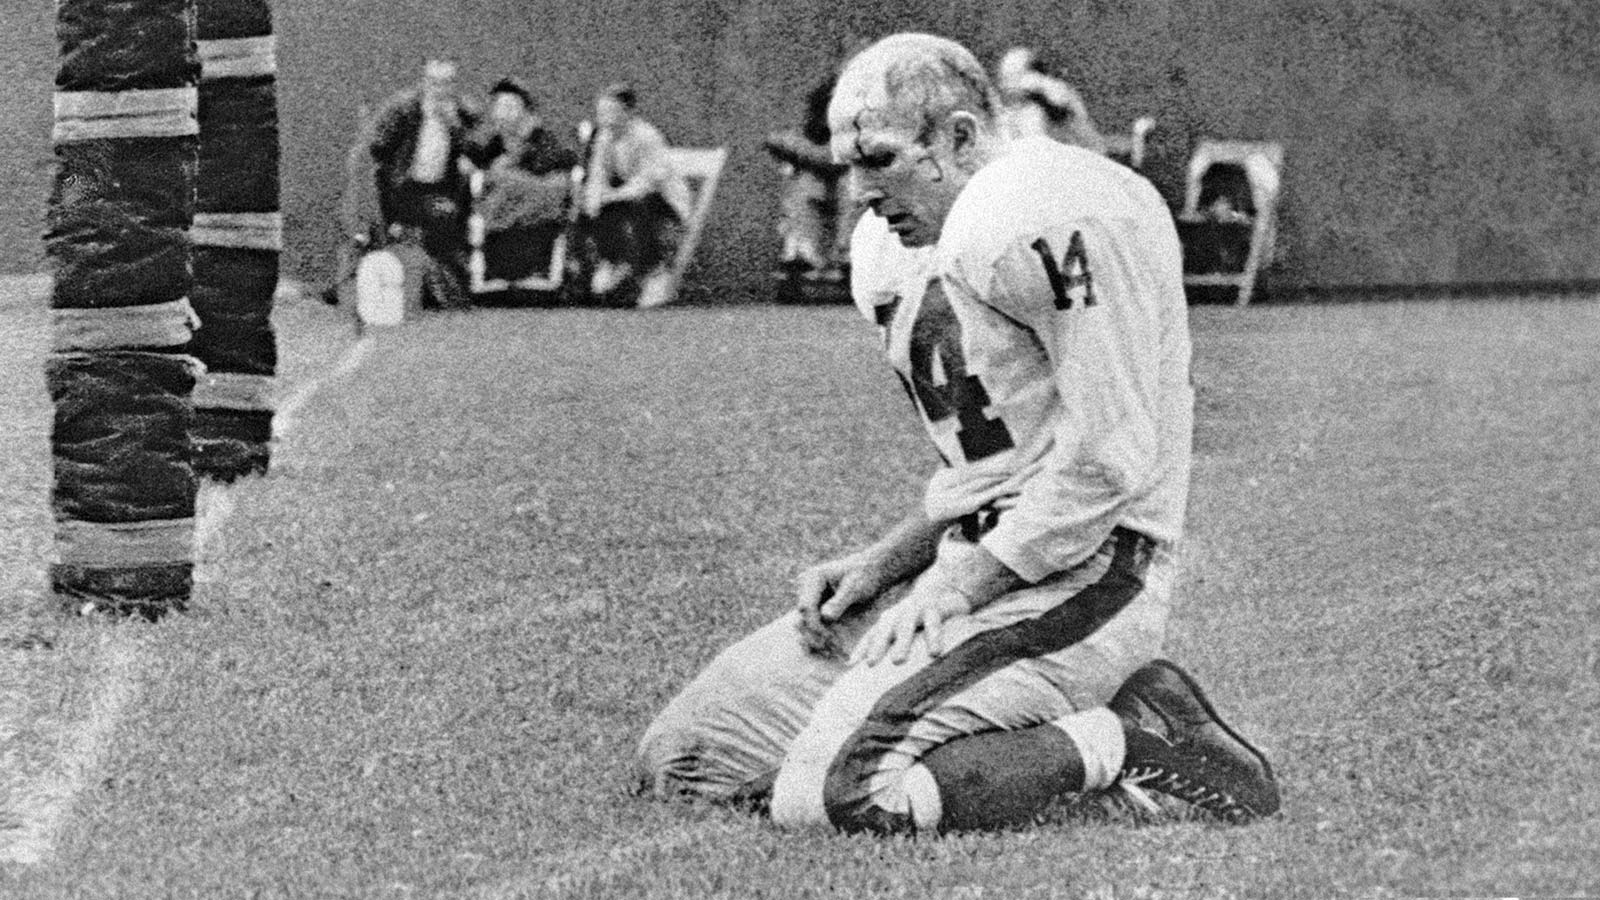 Hall of Fame QB YA Tittle dead at 90